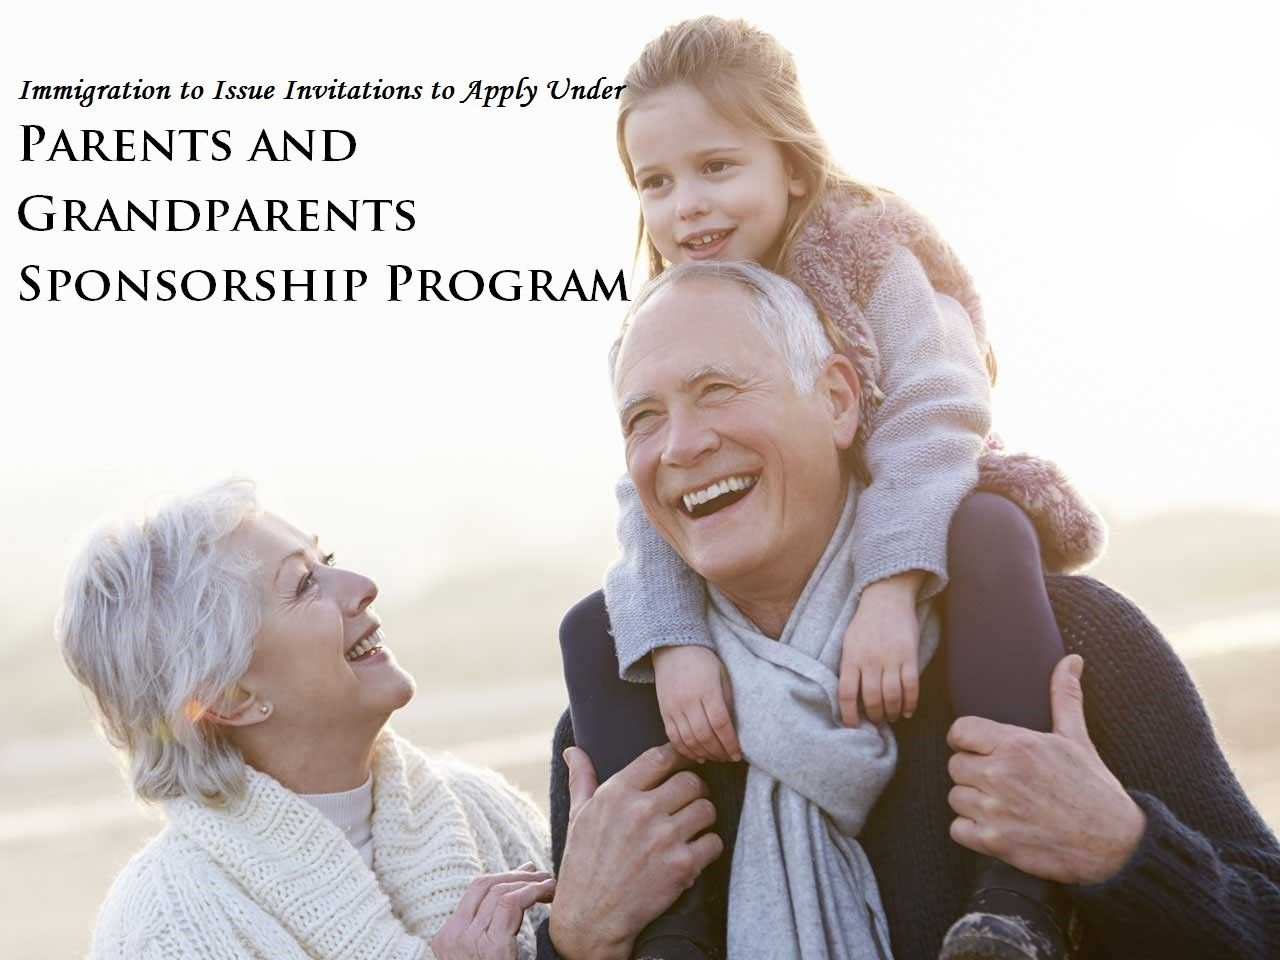 Immigration to Issue Invitations to Apply Under Parents and Grandparents Sponsorship Program